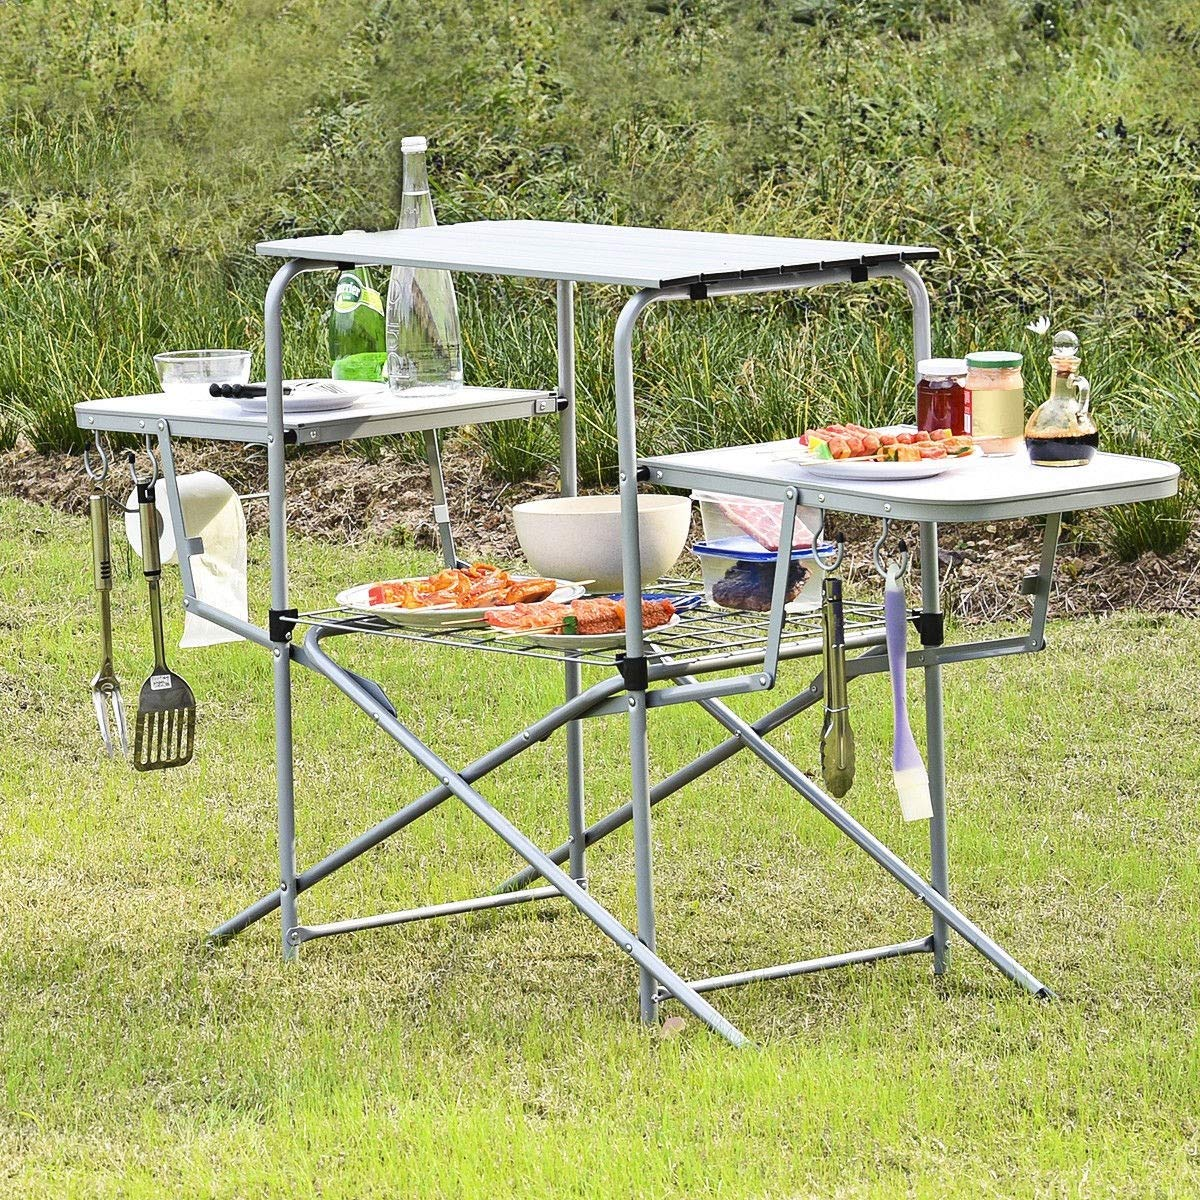 Global Supplies GS-9937 Foldable Camping Outdoor Kitchen Grilling Stand BBQ Table by Global Supplies